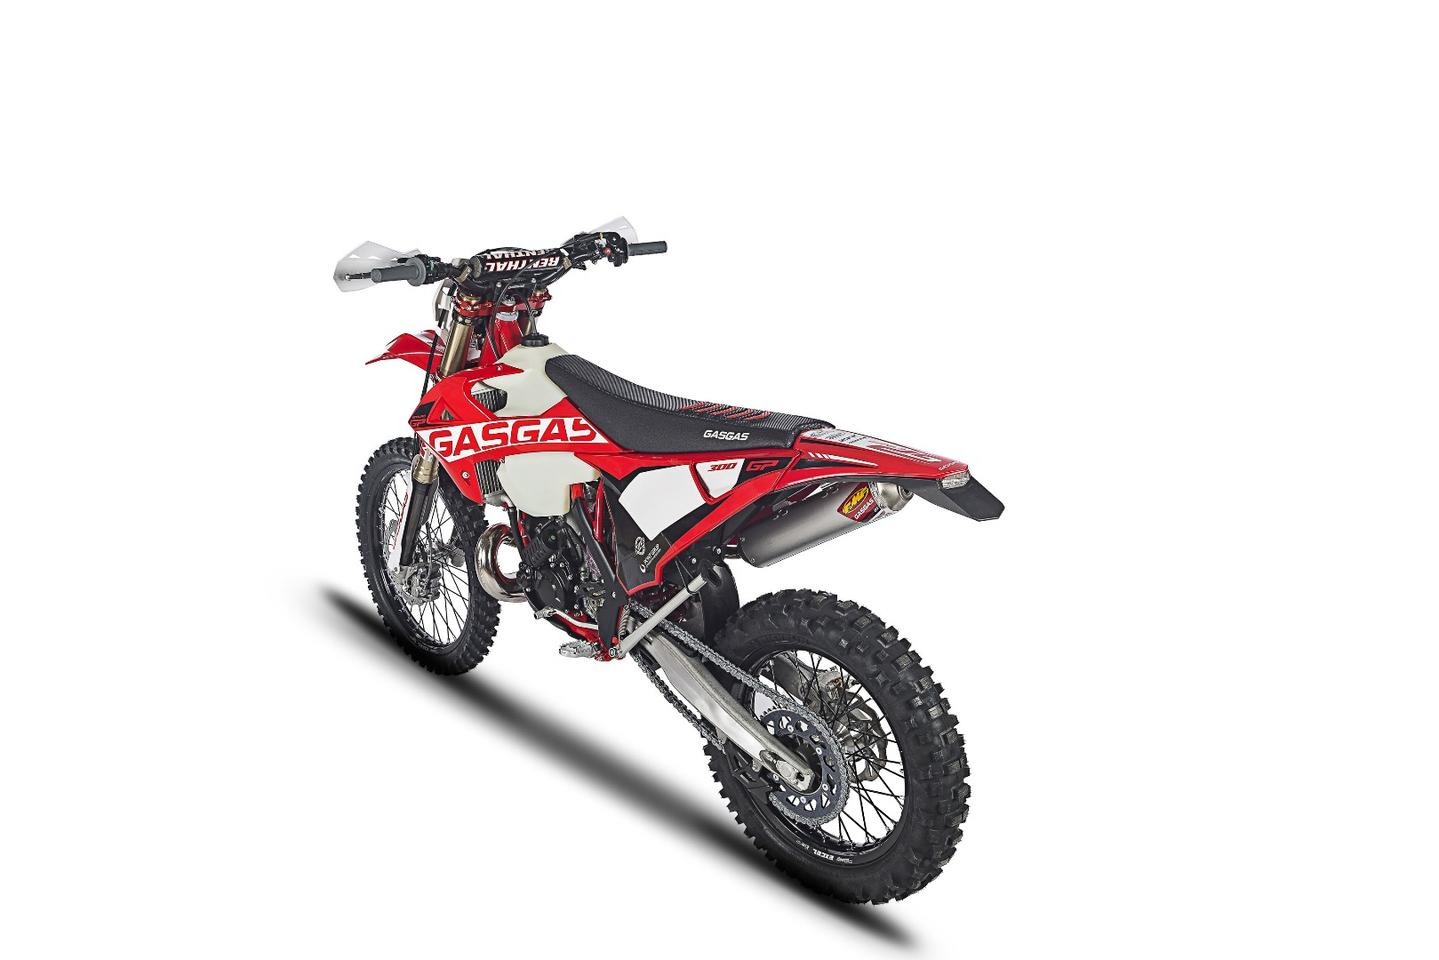 Gas Gas Enduro GP: enough extra parts and bling to bring it up to factory race spec